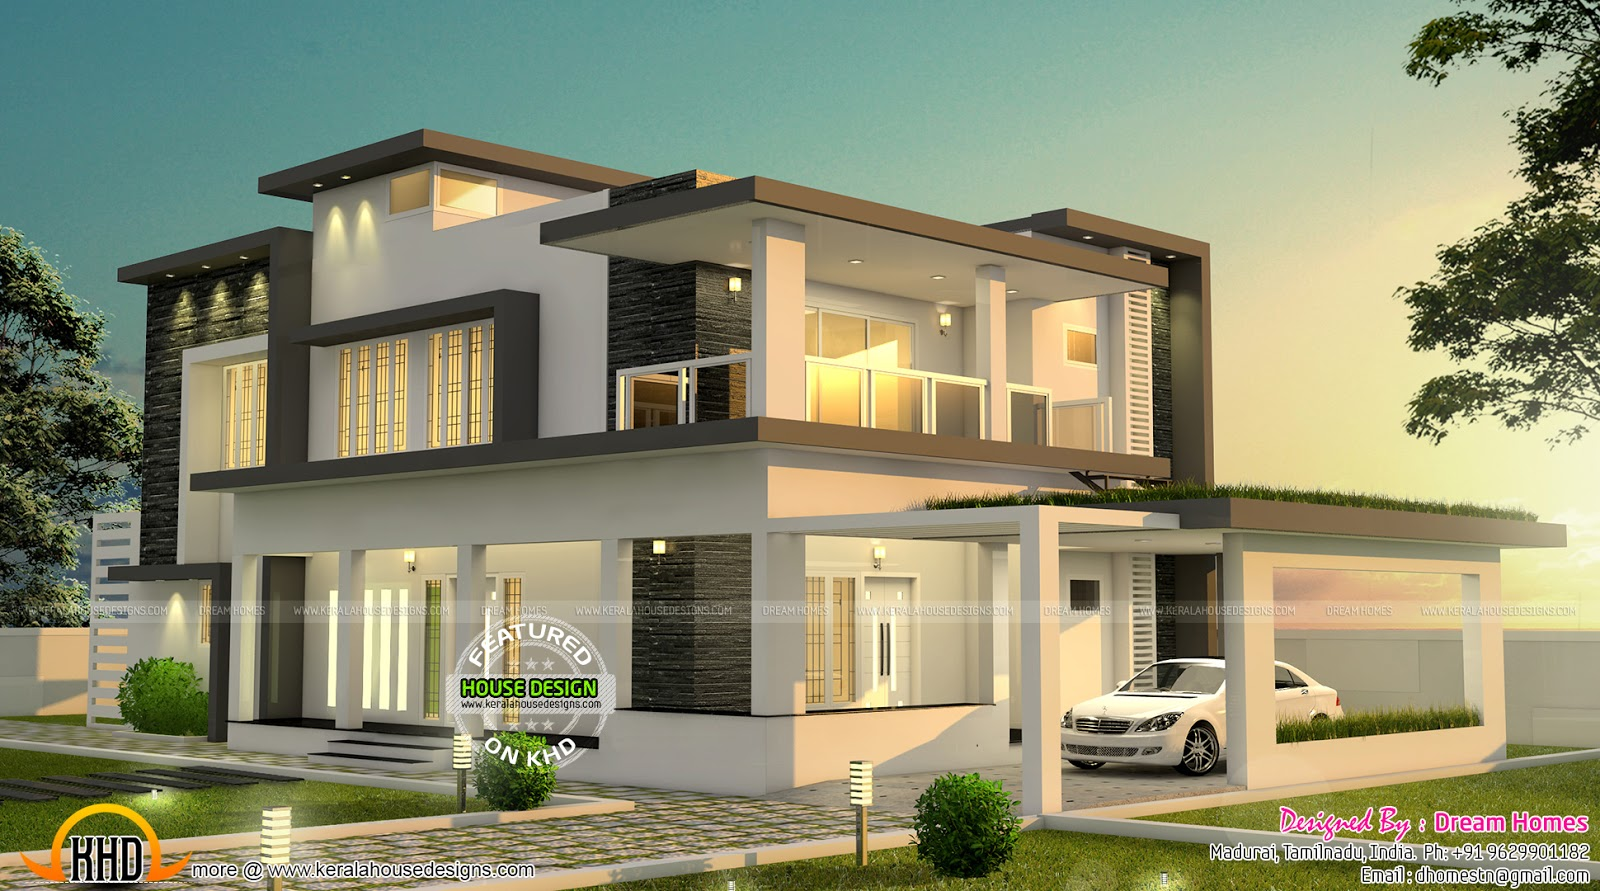 Beautiful modern house in tamilnadu kerala home design for Modern house design 2015 philippines